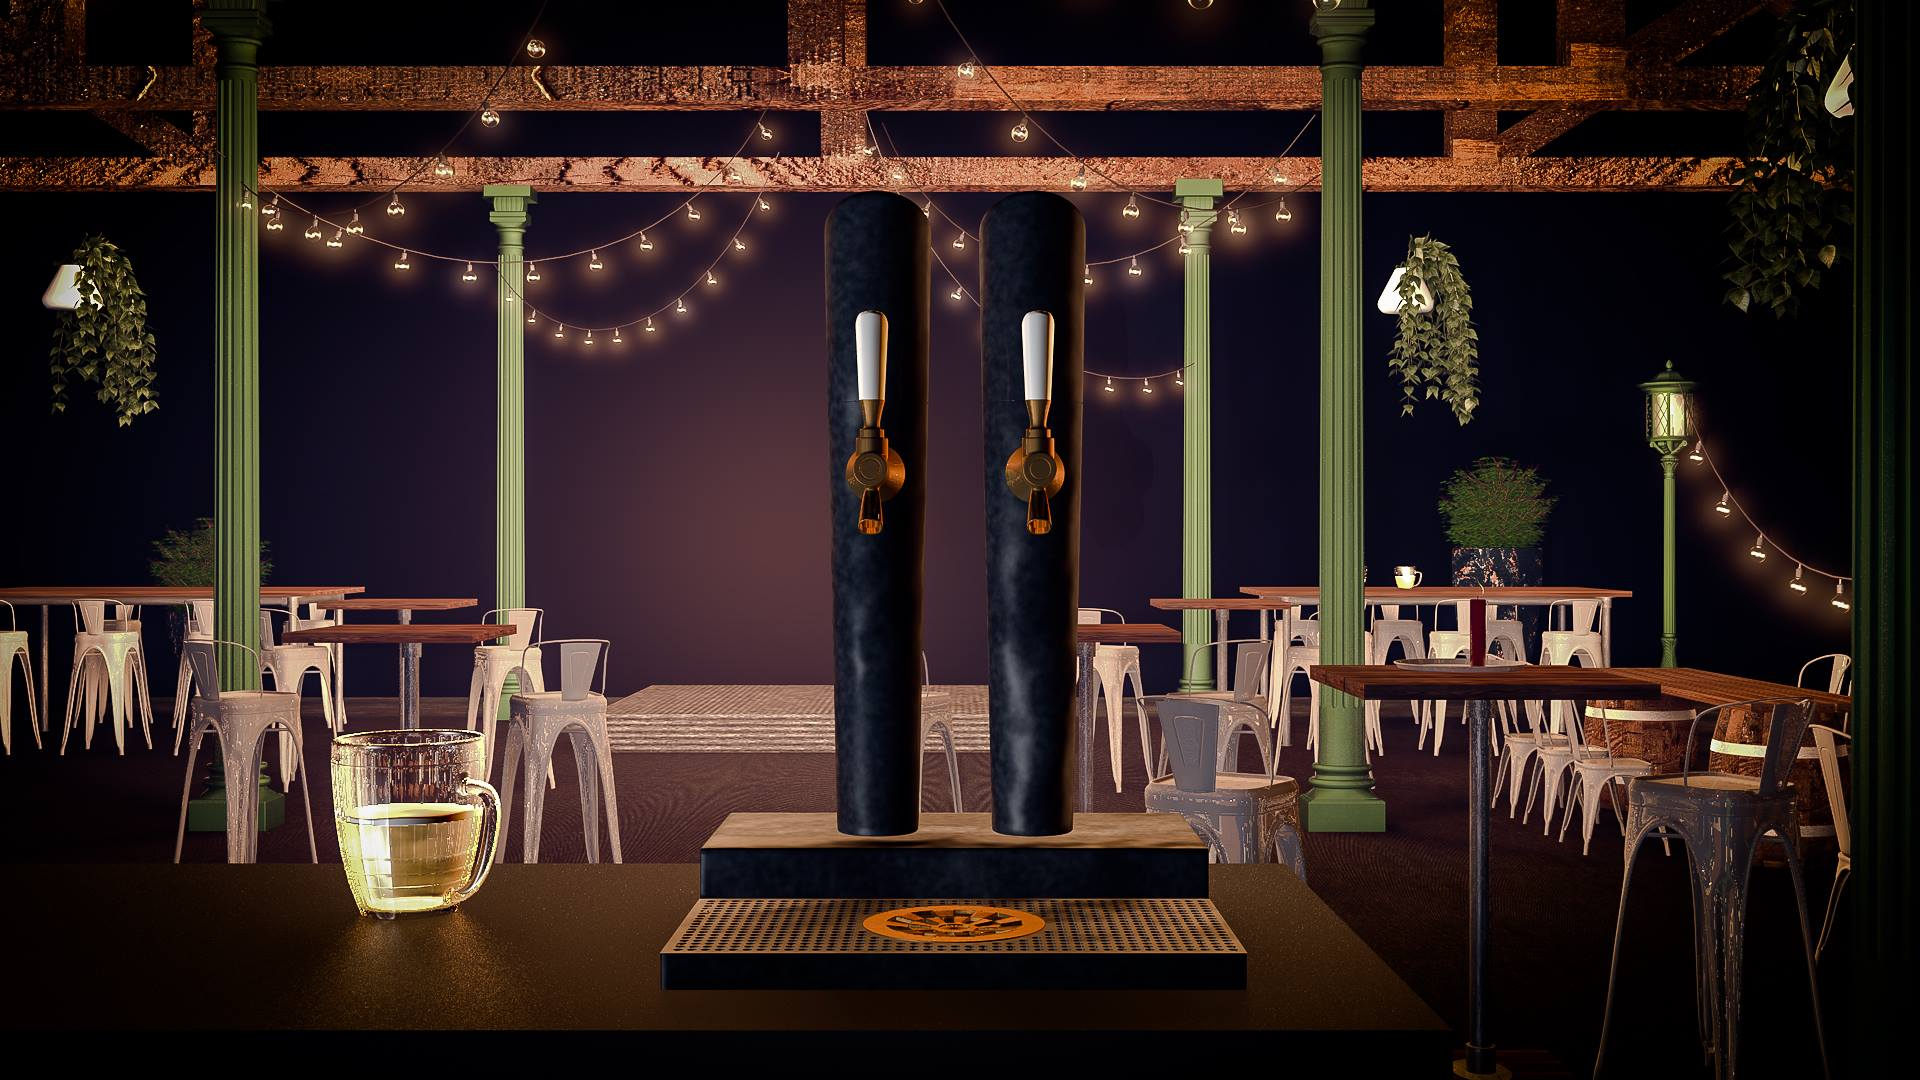 Beer Hall in Cinema 4D